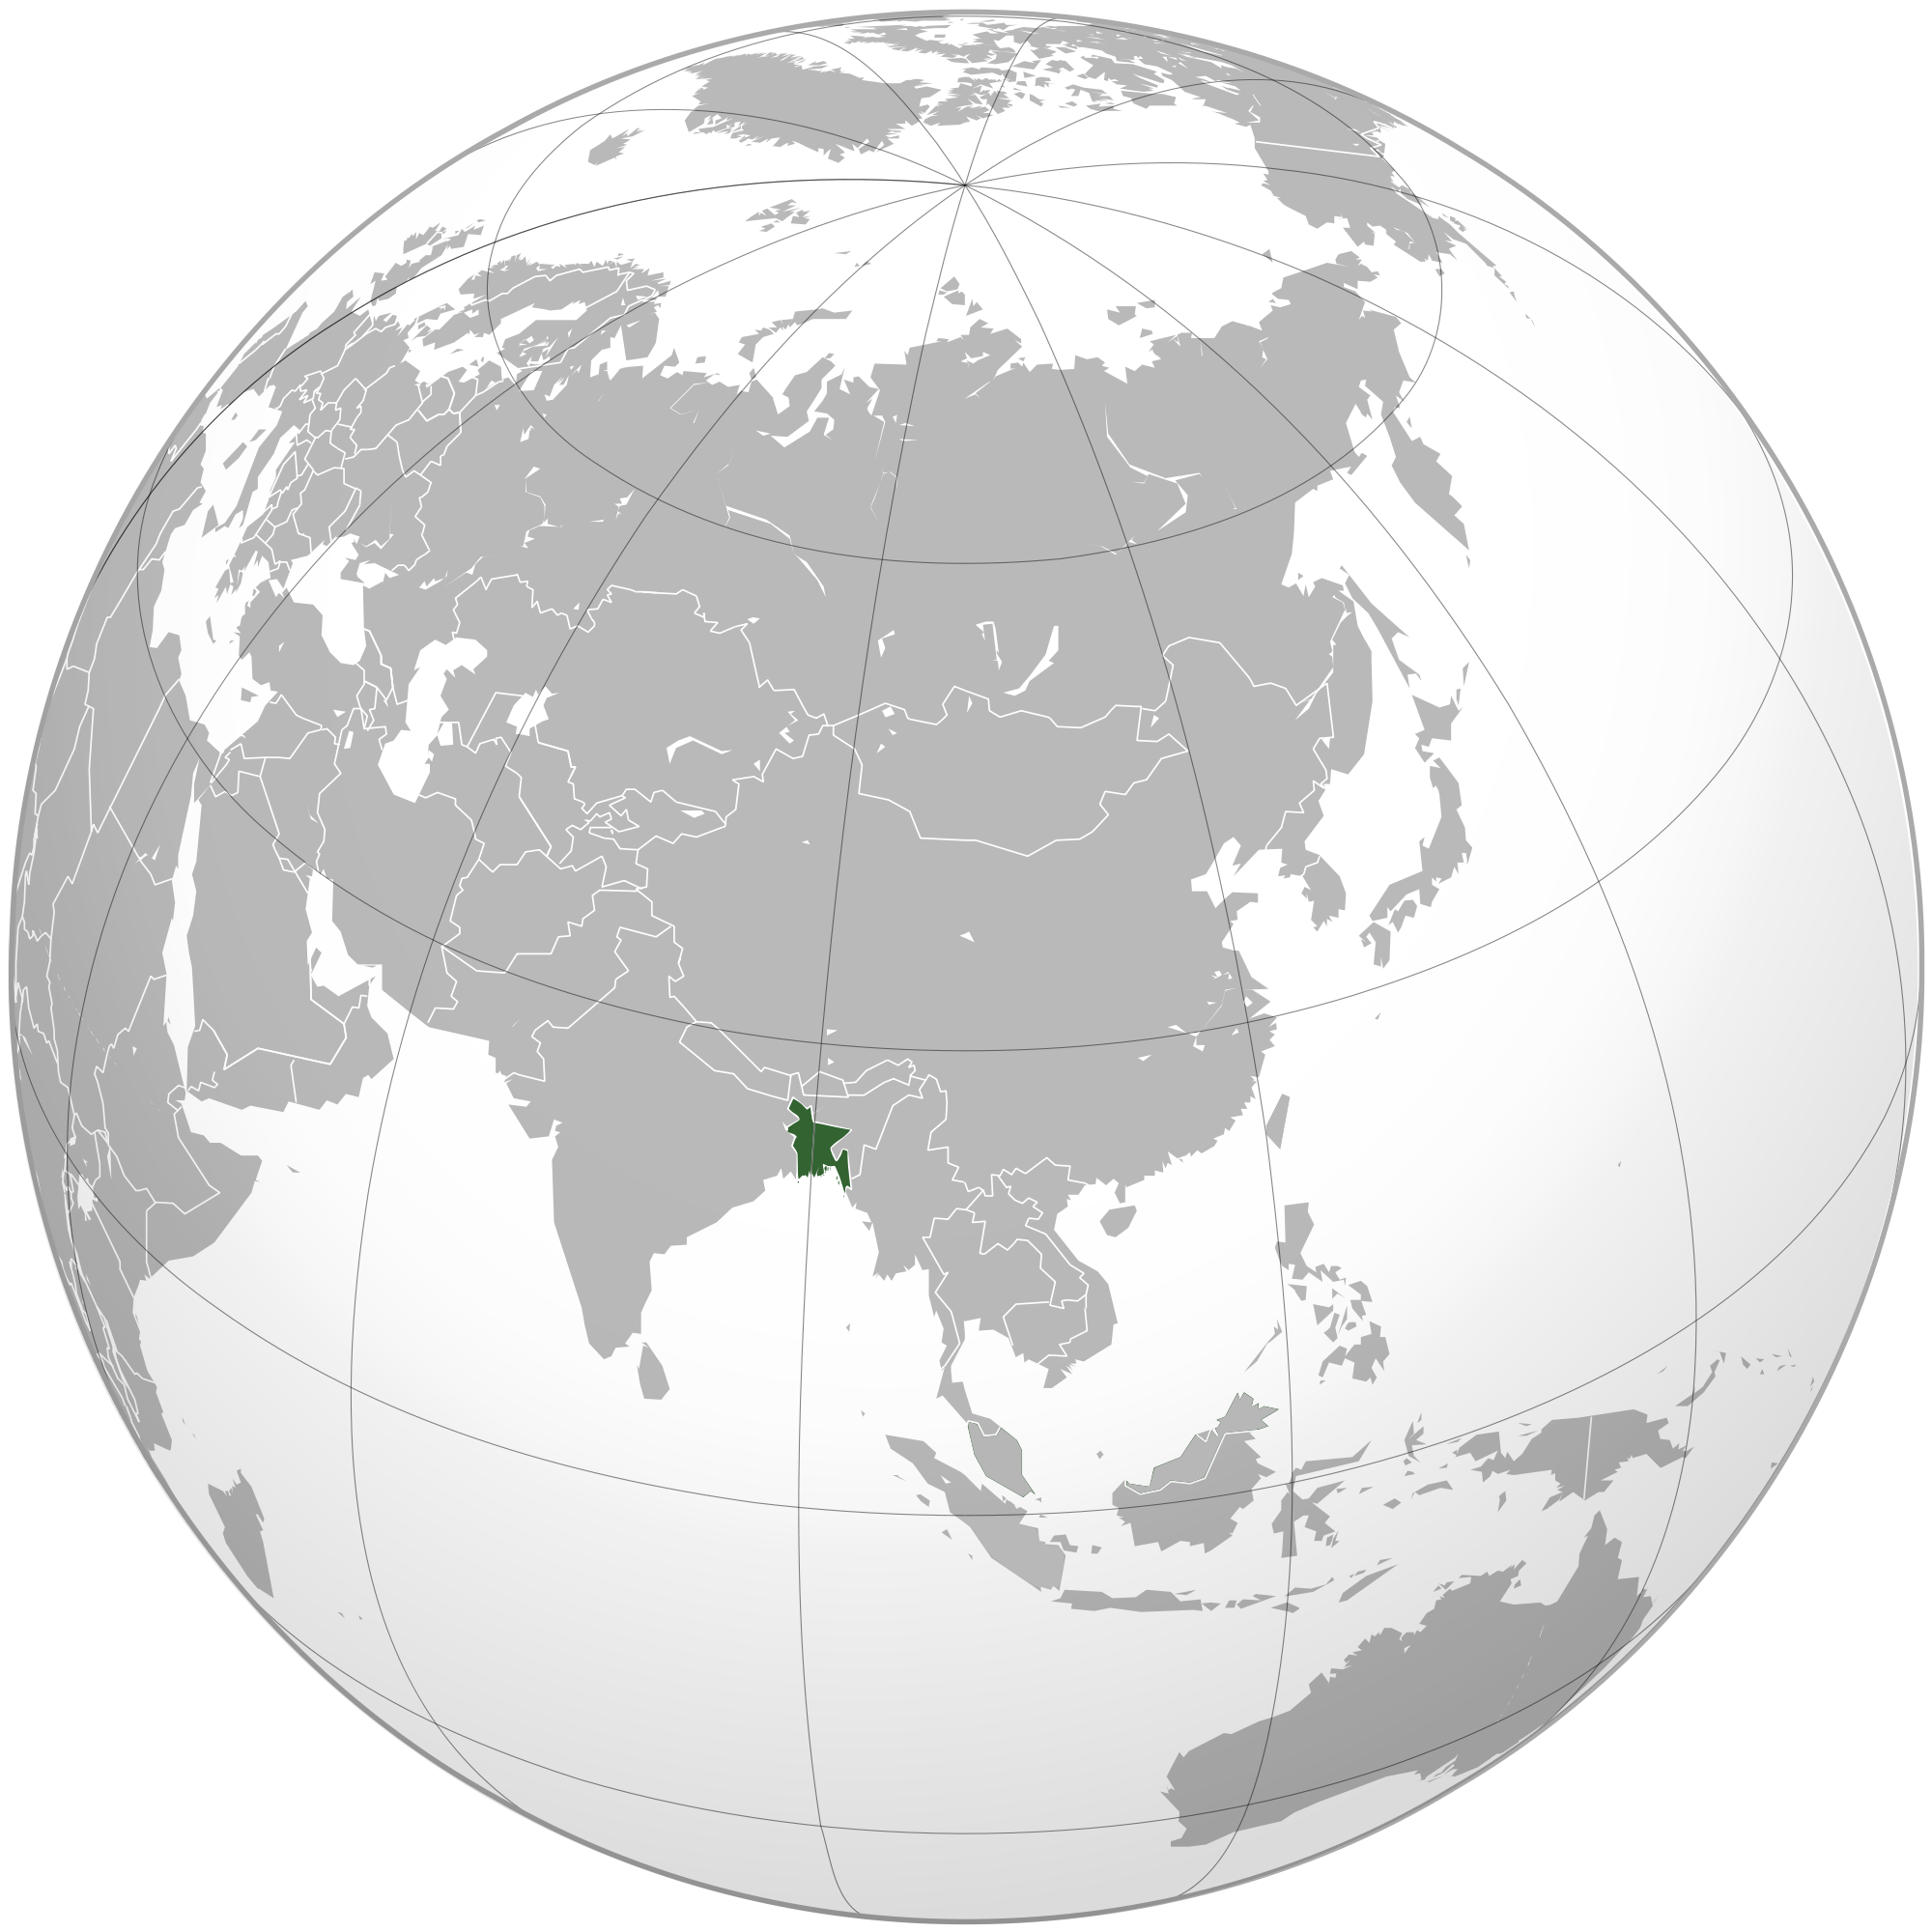 Location of the Bangladesh in the World Map